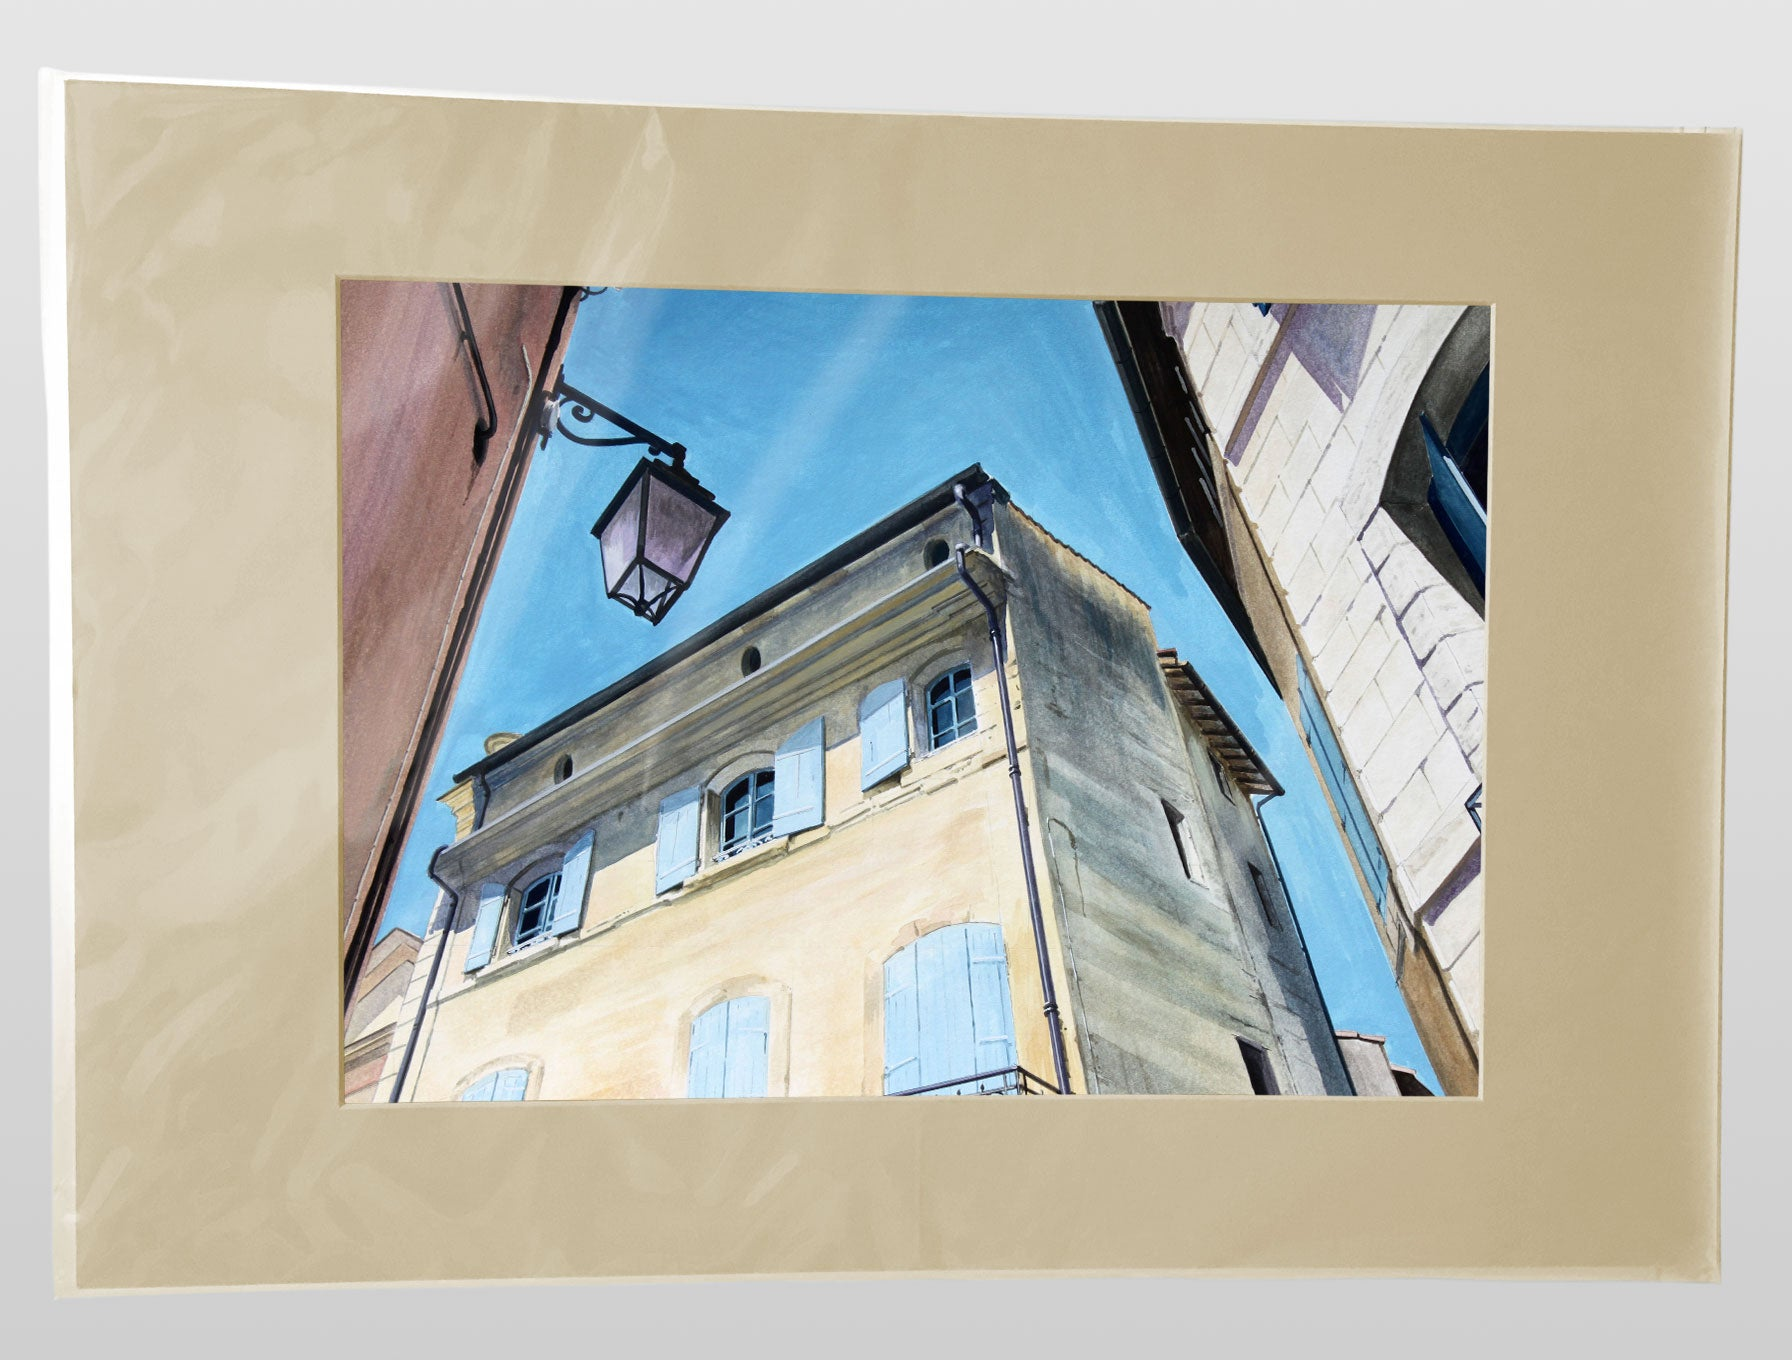 LOOKING UP, UZES - A3 Giclee art print